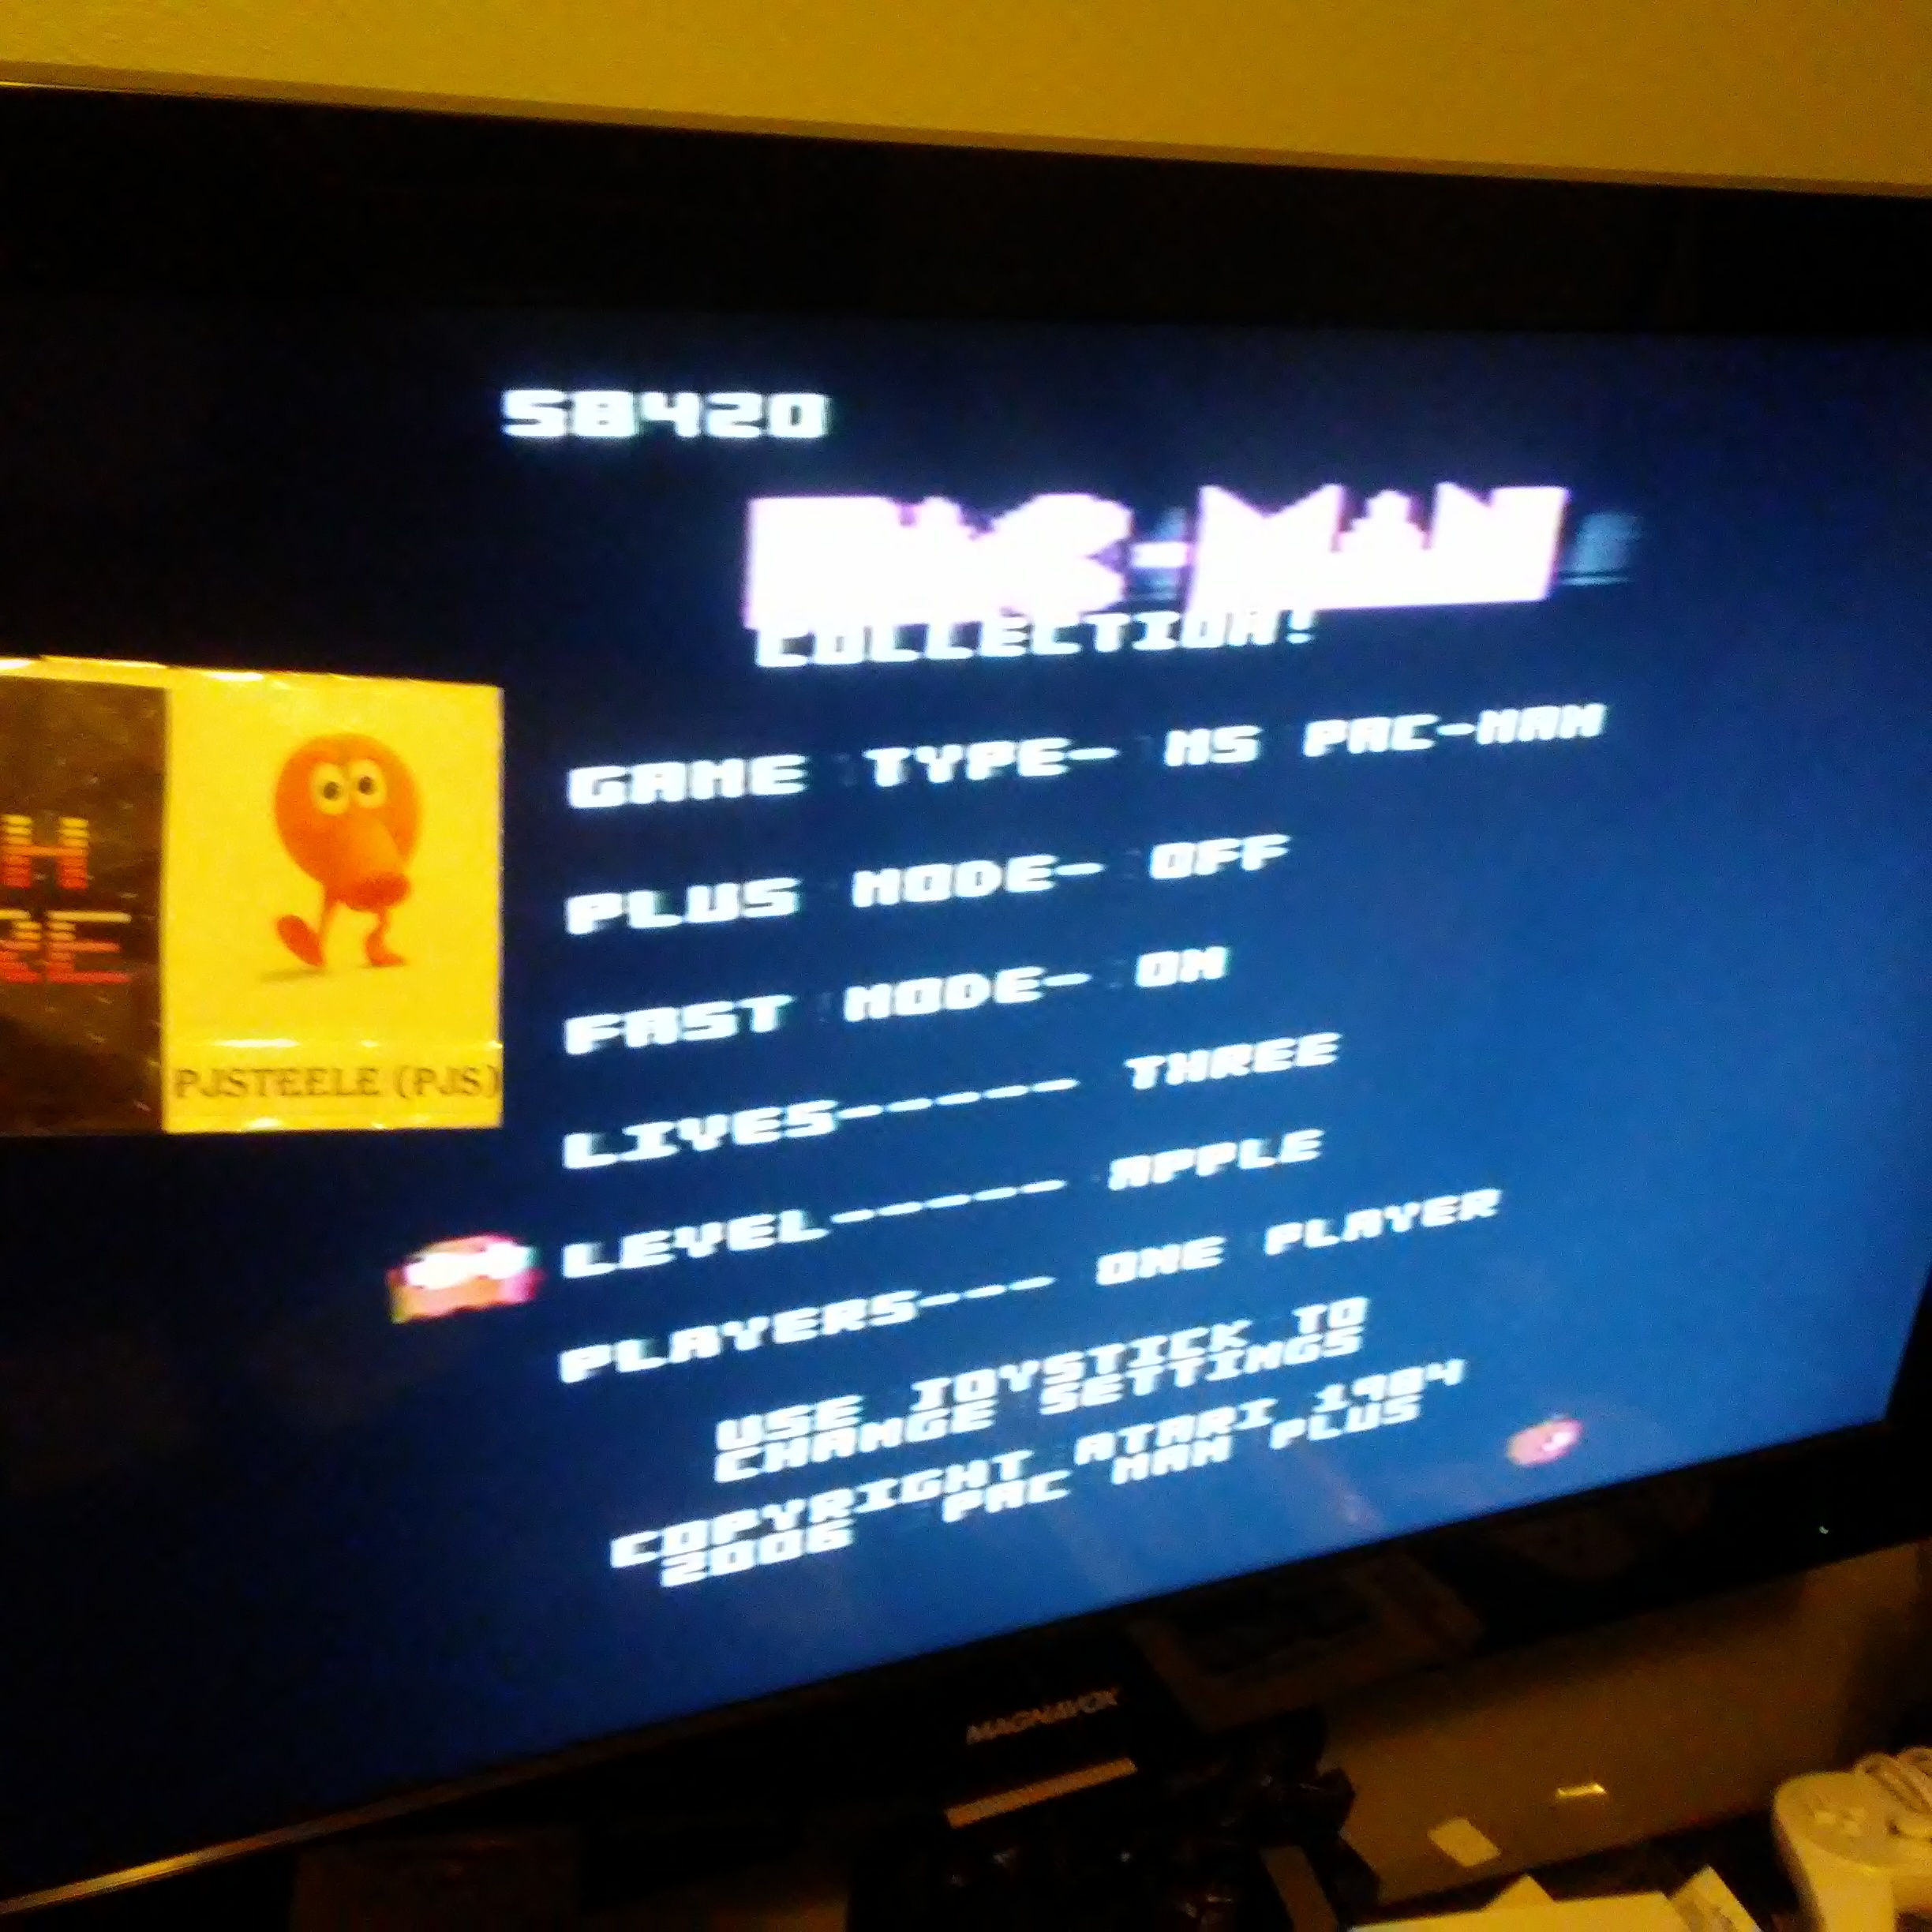 Pac-Man Collection: Ms. Pac-Man [Apple/Plus Off/Fast On] 58,420 points